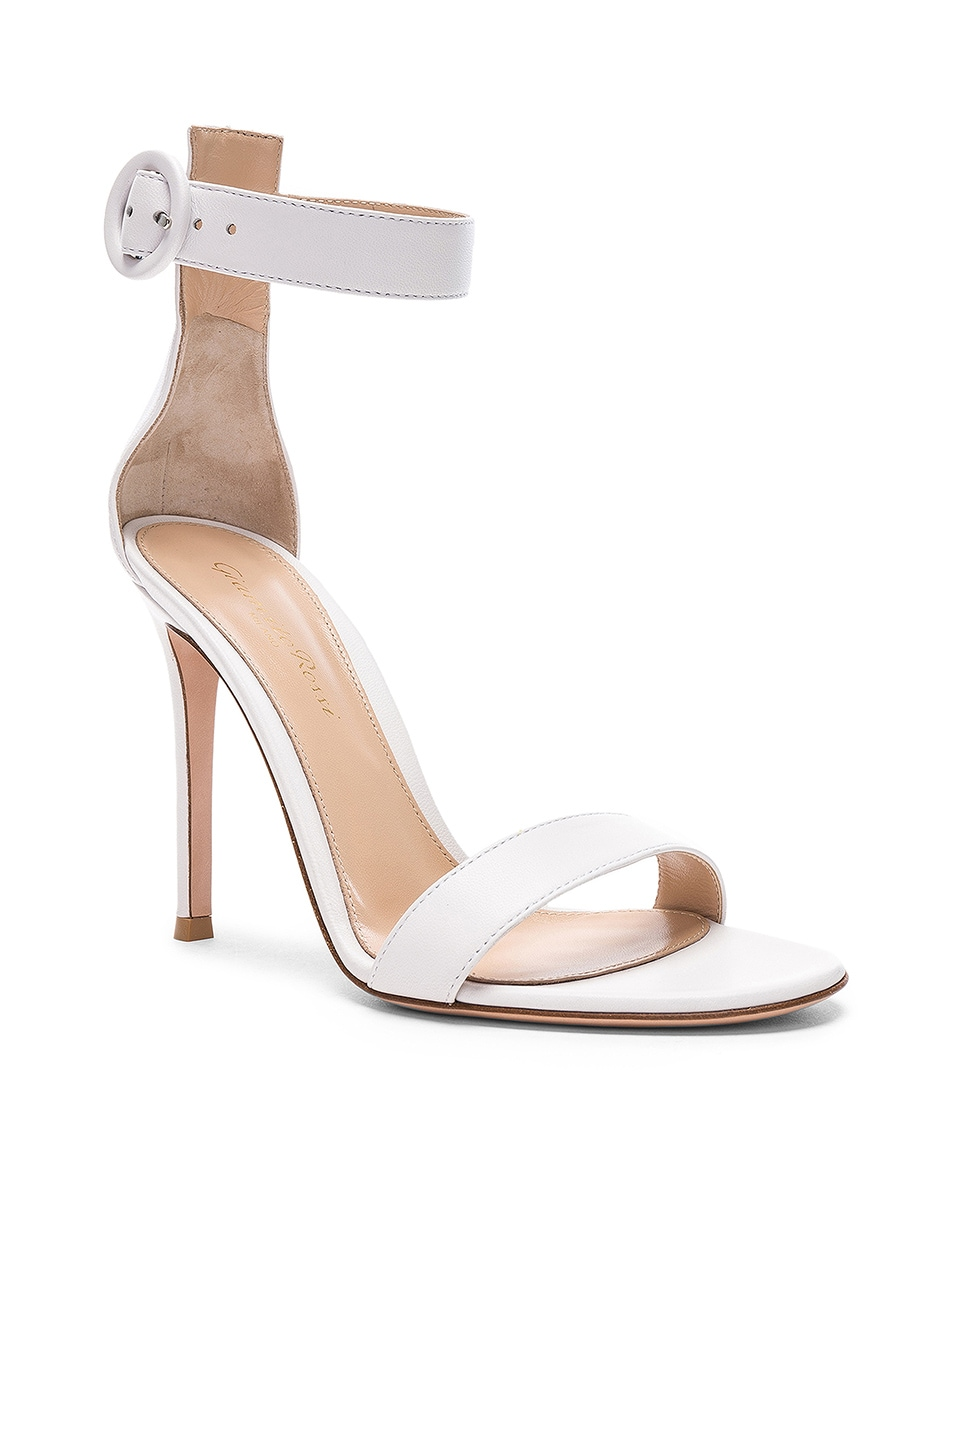 Image 2 of Gianvito Rossi Leather Portofino Heels in White